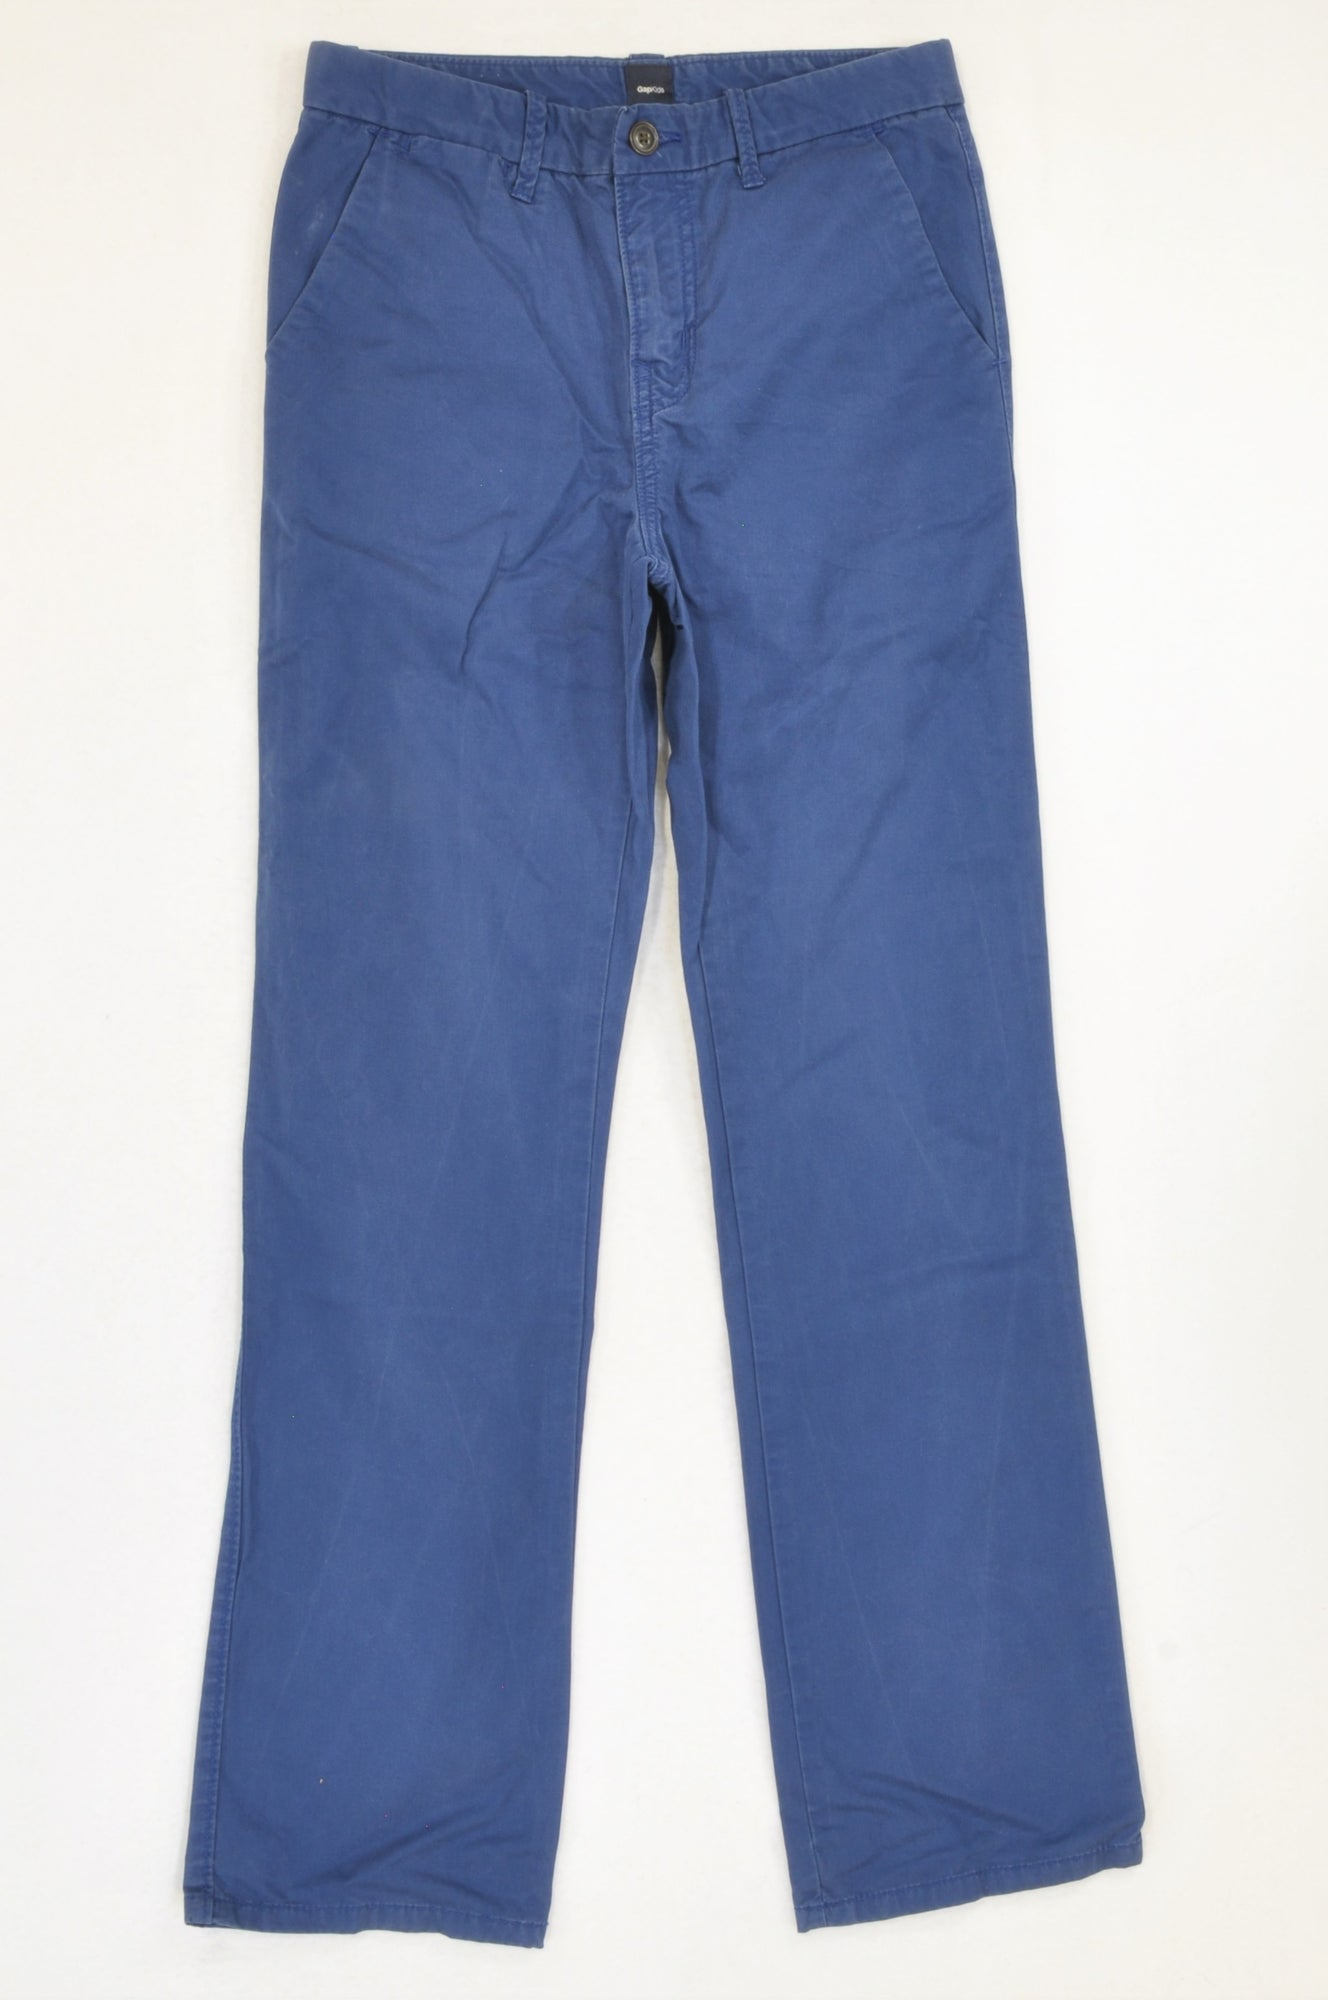 GAP Basic Dark Blue Chinos Boys 15-16 years